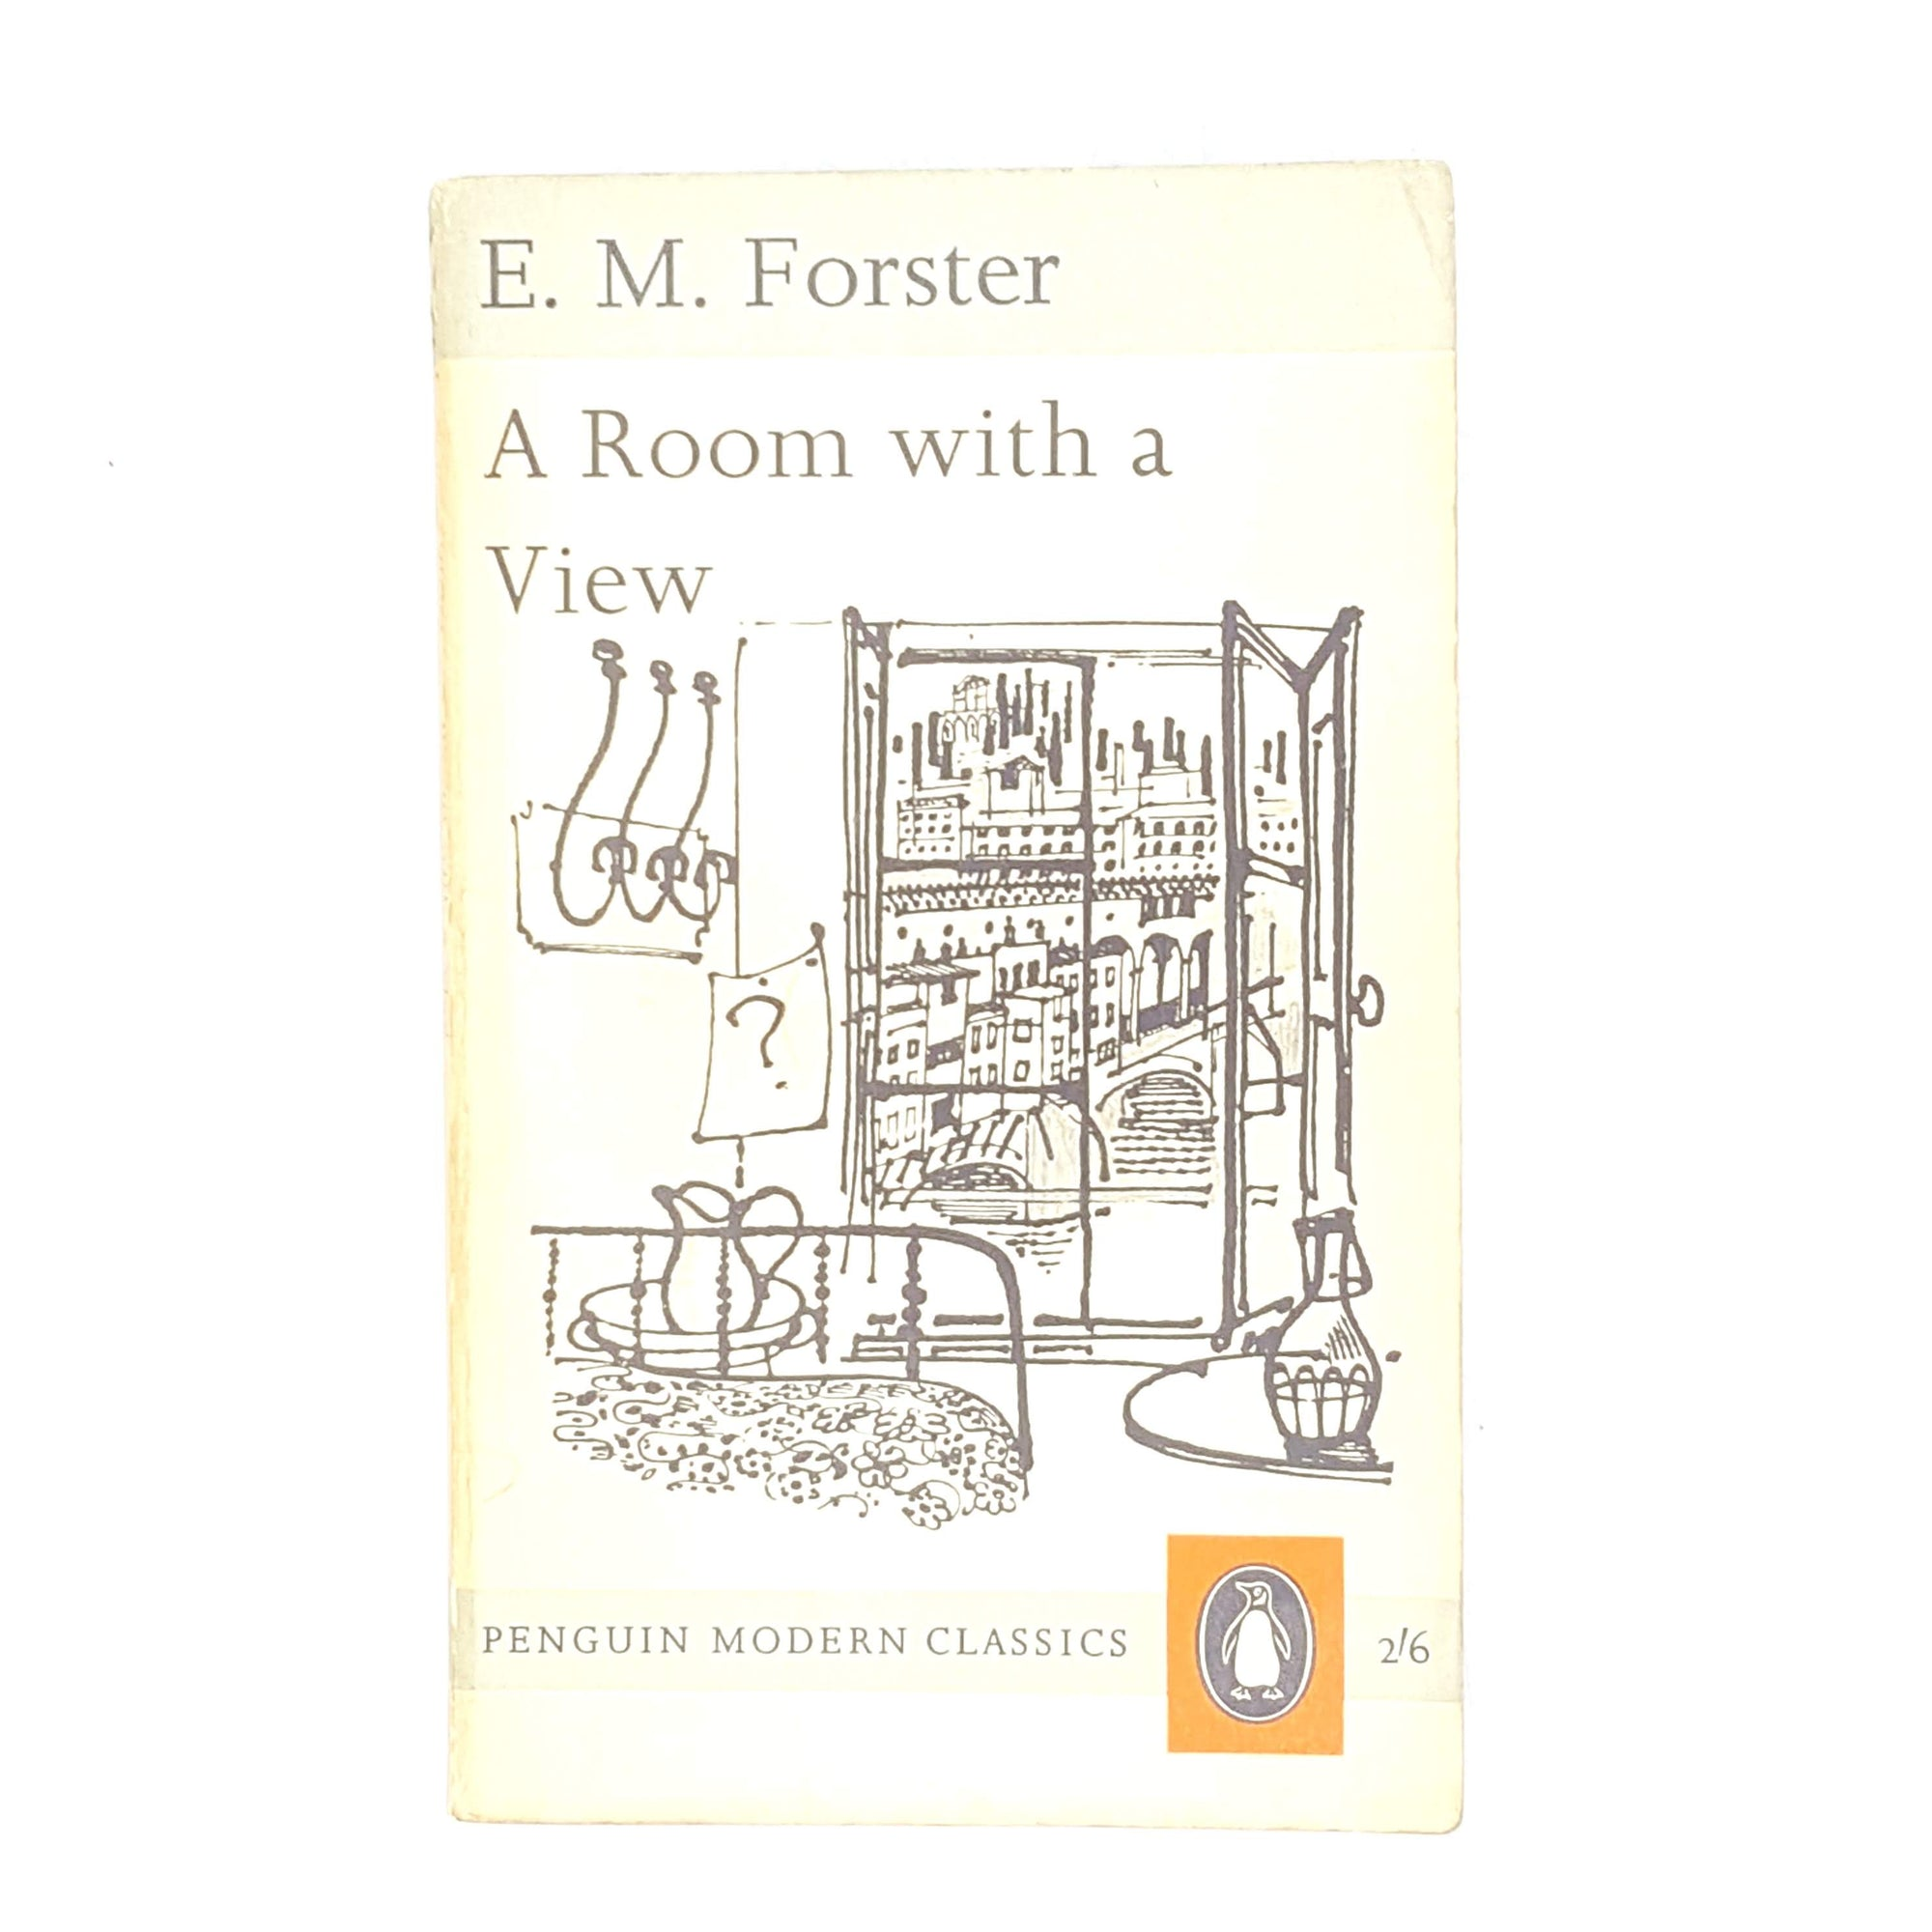 country-house-library-old-classic-thrift-antique-grey-1961-penguin-e-m-forster-modern-classics-books-vintage-a-room-with-a-view-decorative-white-patterned-